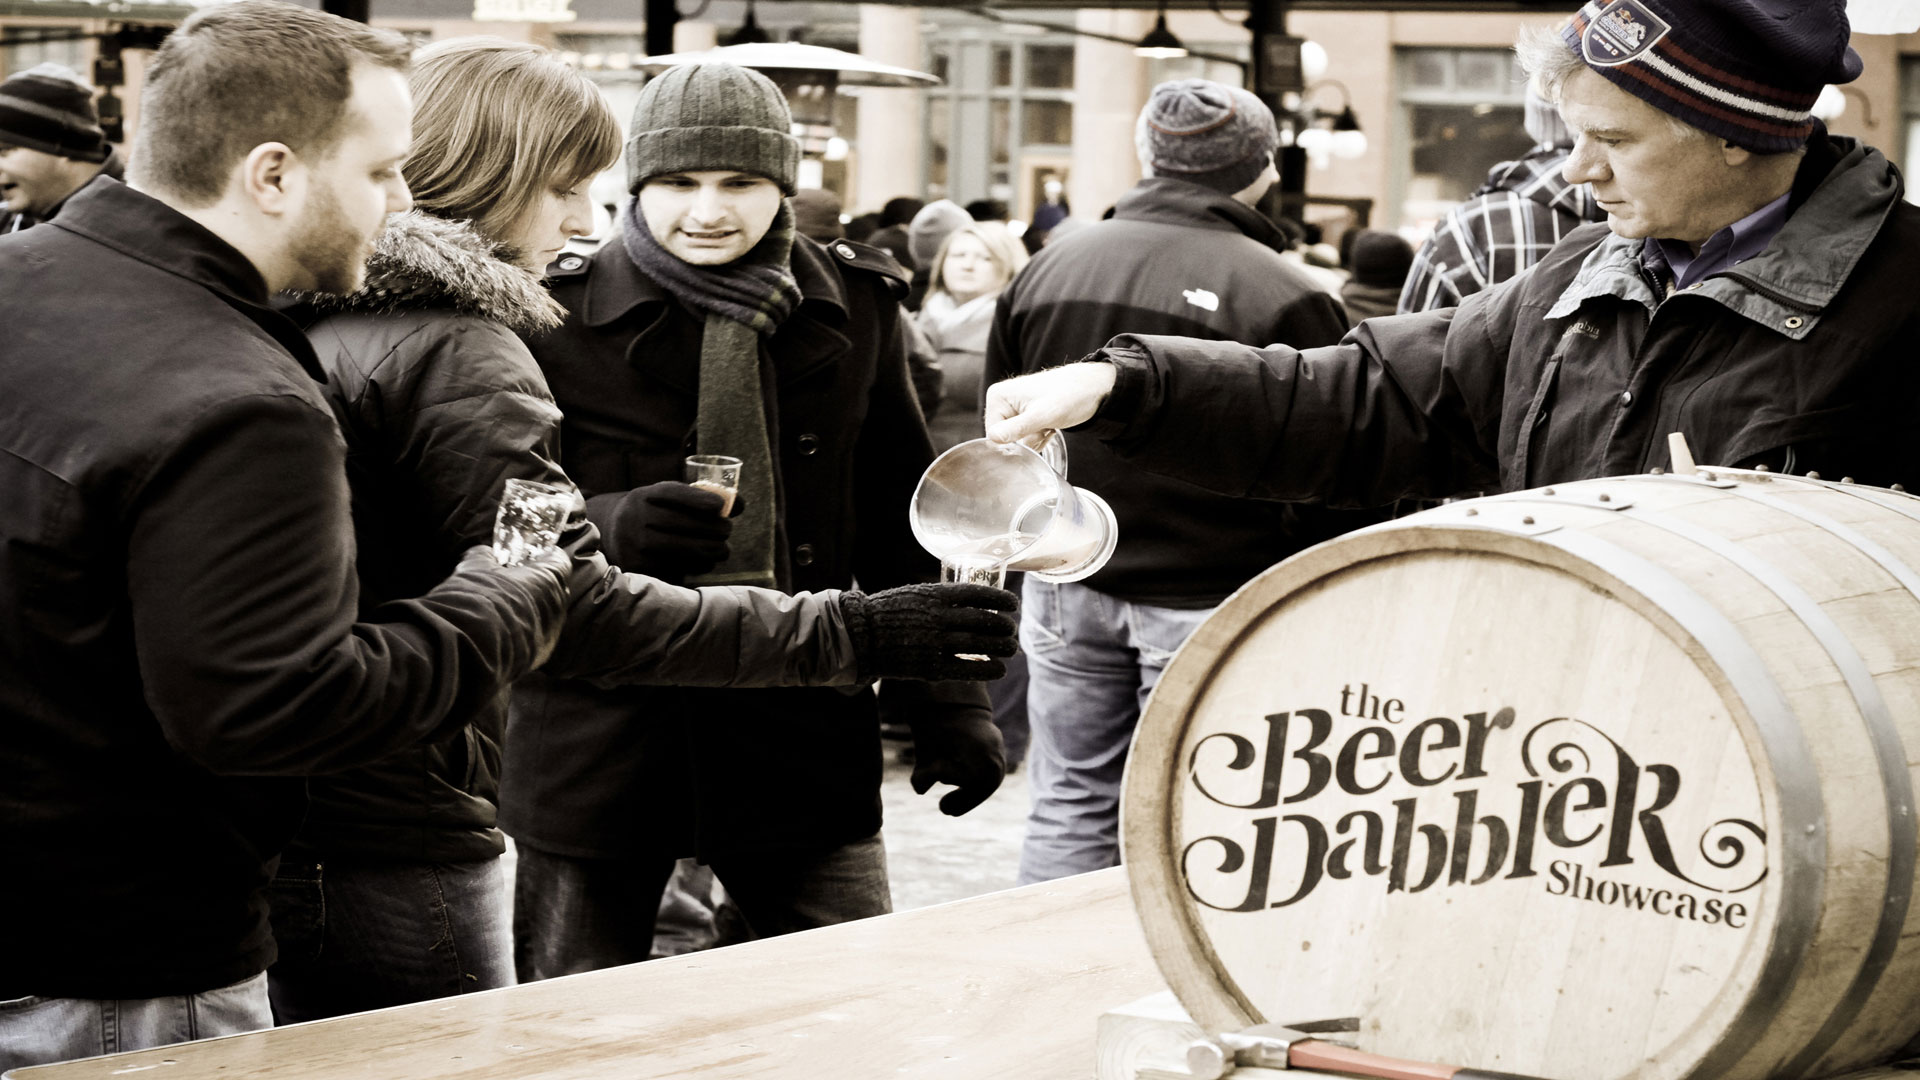 The Beer Dabbler